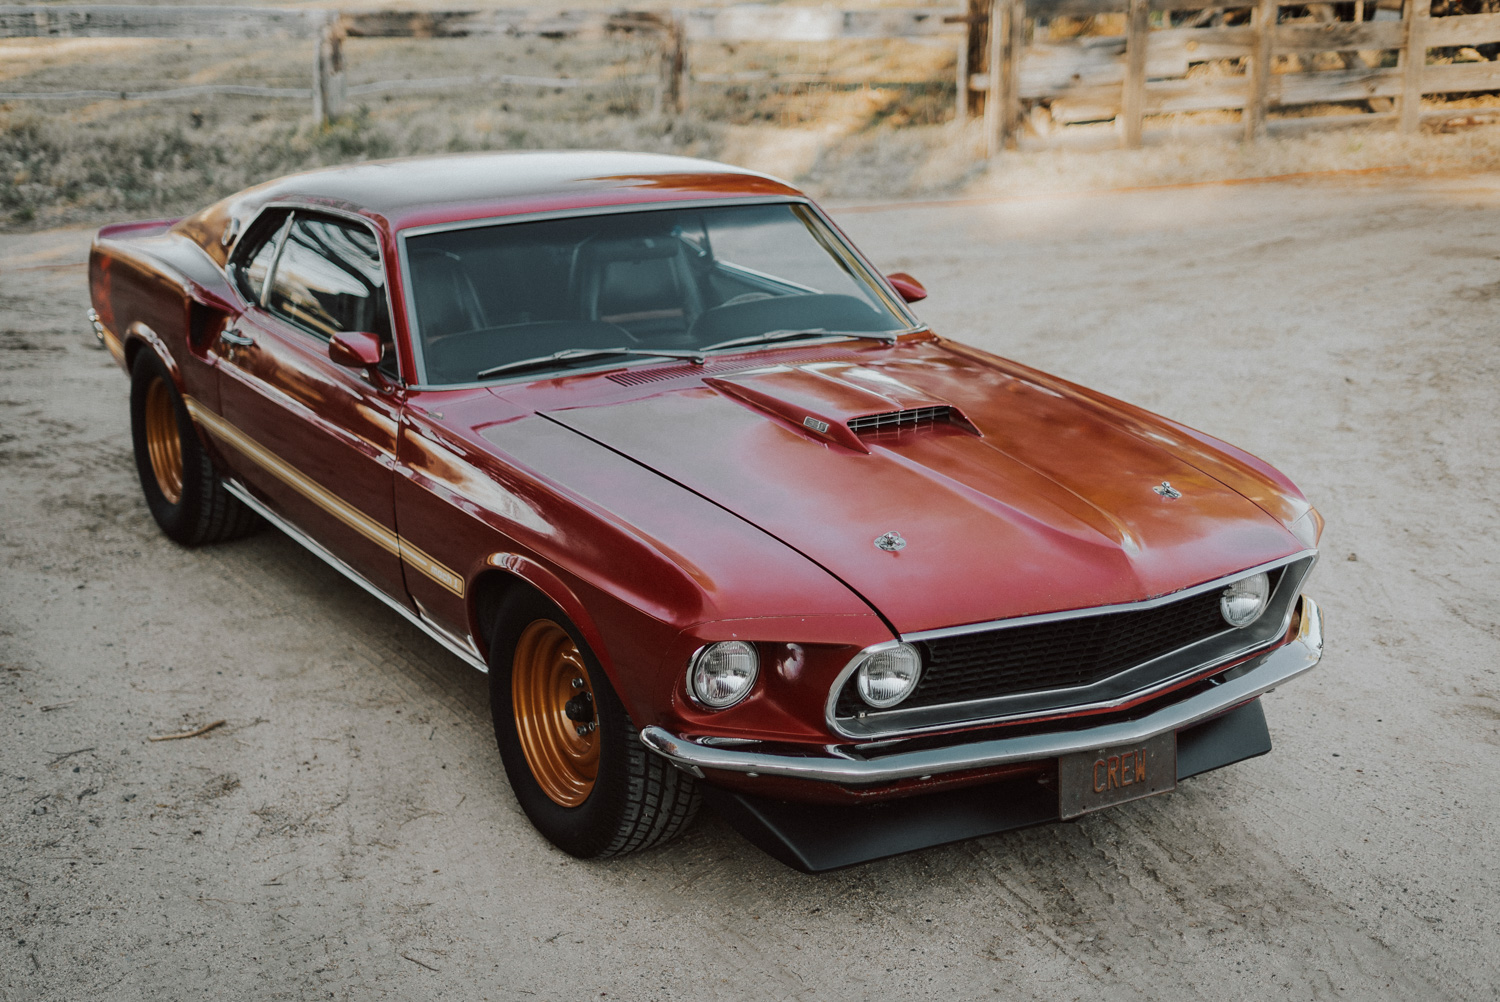 1969 Ford Mustang Mach 1 3/4 front high